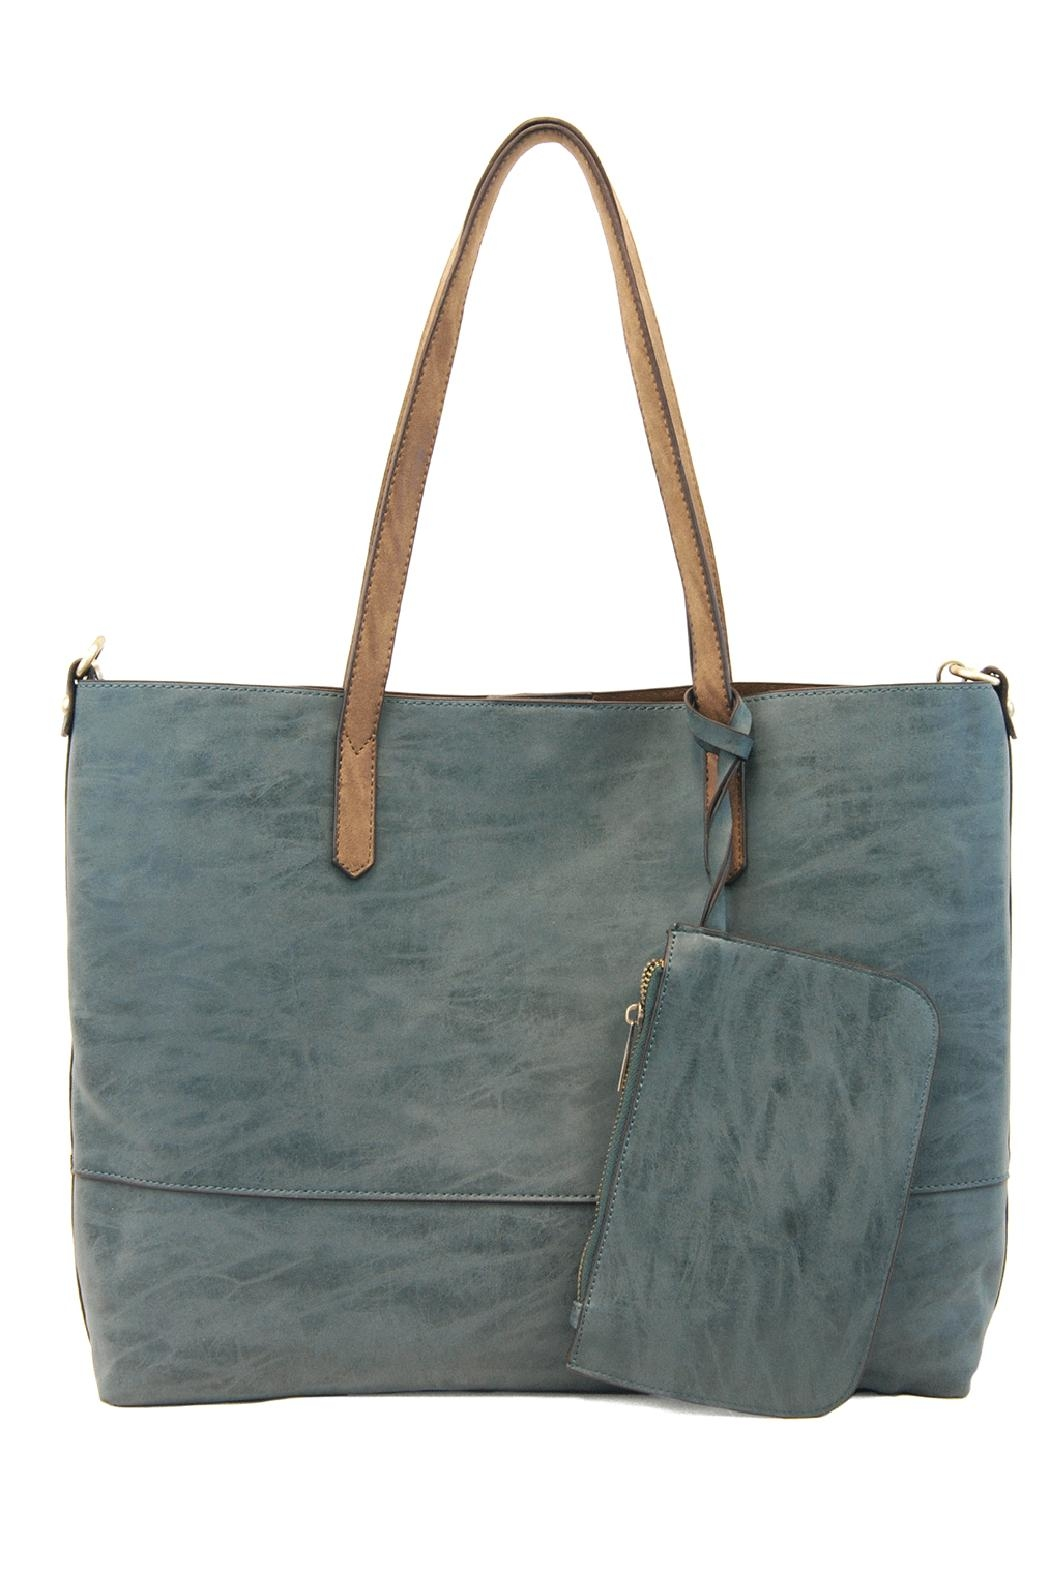 Joy Susan Accessories Brushed 2in1 Tote - Main Image